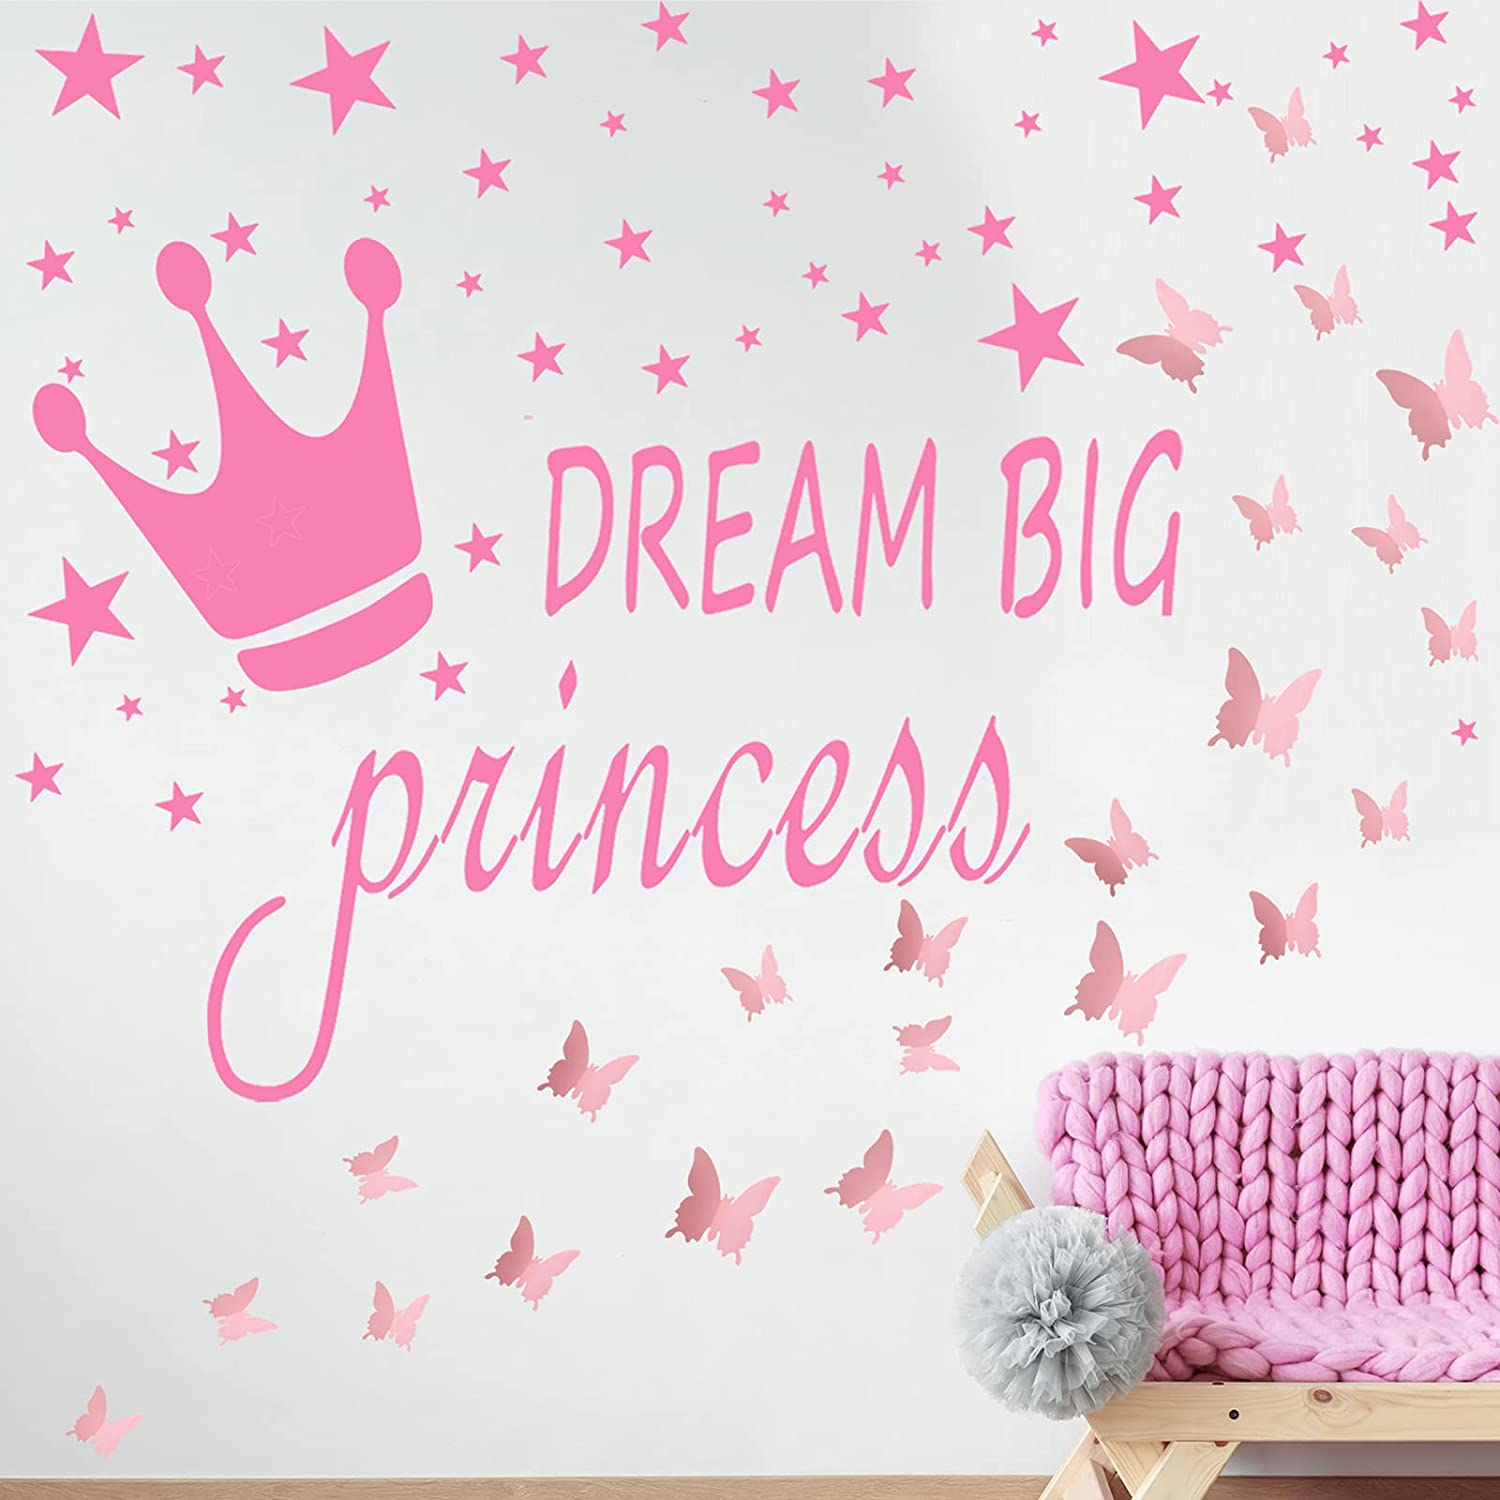 Dream Big Princess Bedroom Decals 3D Butterfly Stickers Vinyl Wall Stickers for Kids Baby Girls Bedroom Pink Butterflies Wall Stickers Wall Art Quotes for Home and Room Decoration